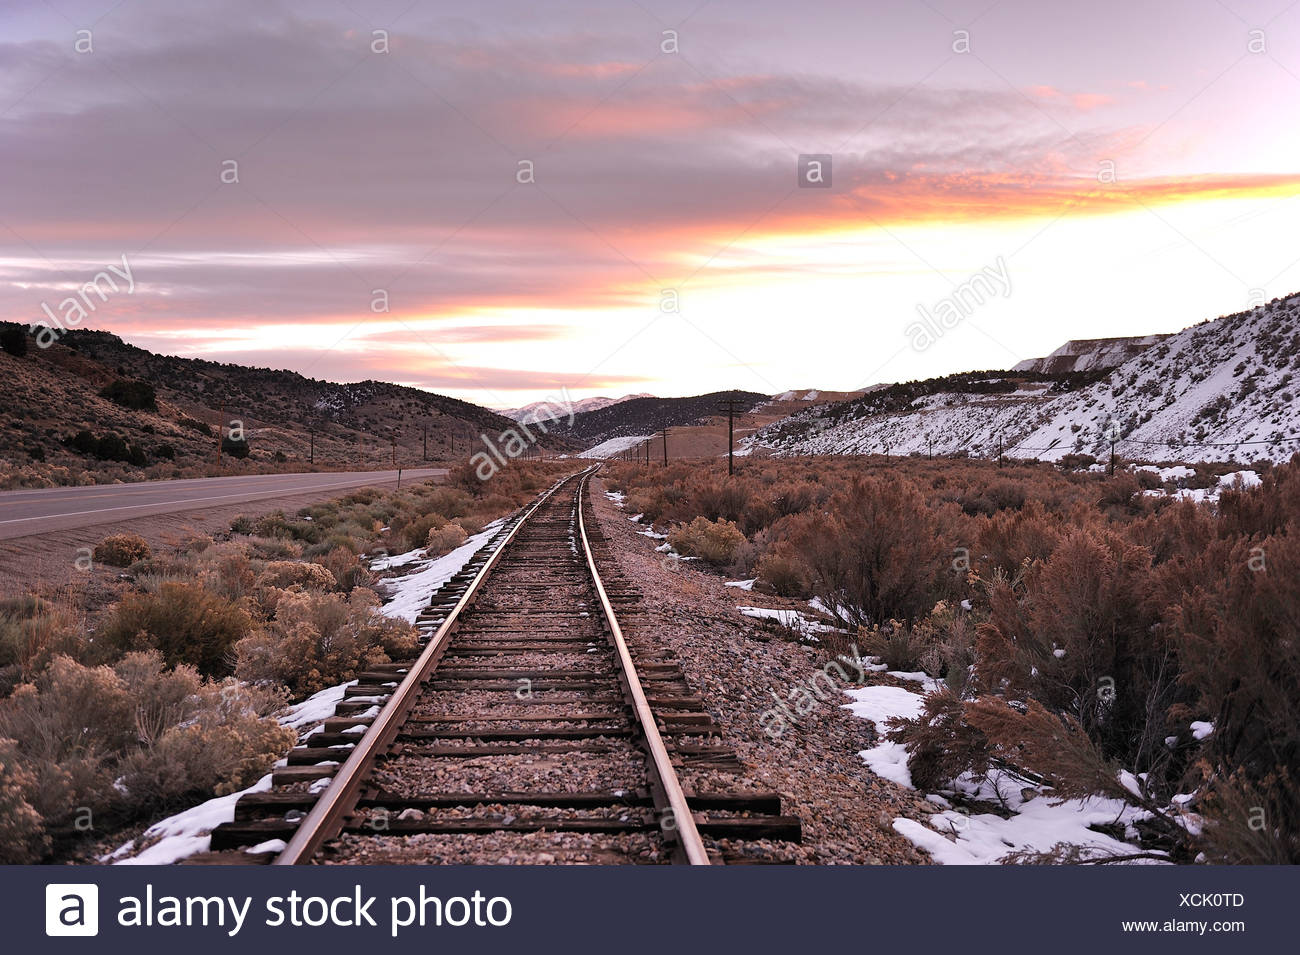 Railroad, tracks, near, Ely, loneliest road, straight, winter, USA, America - Stock Image